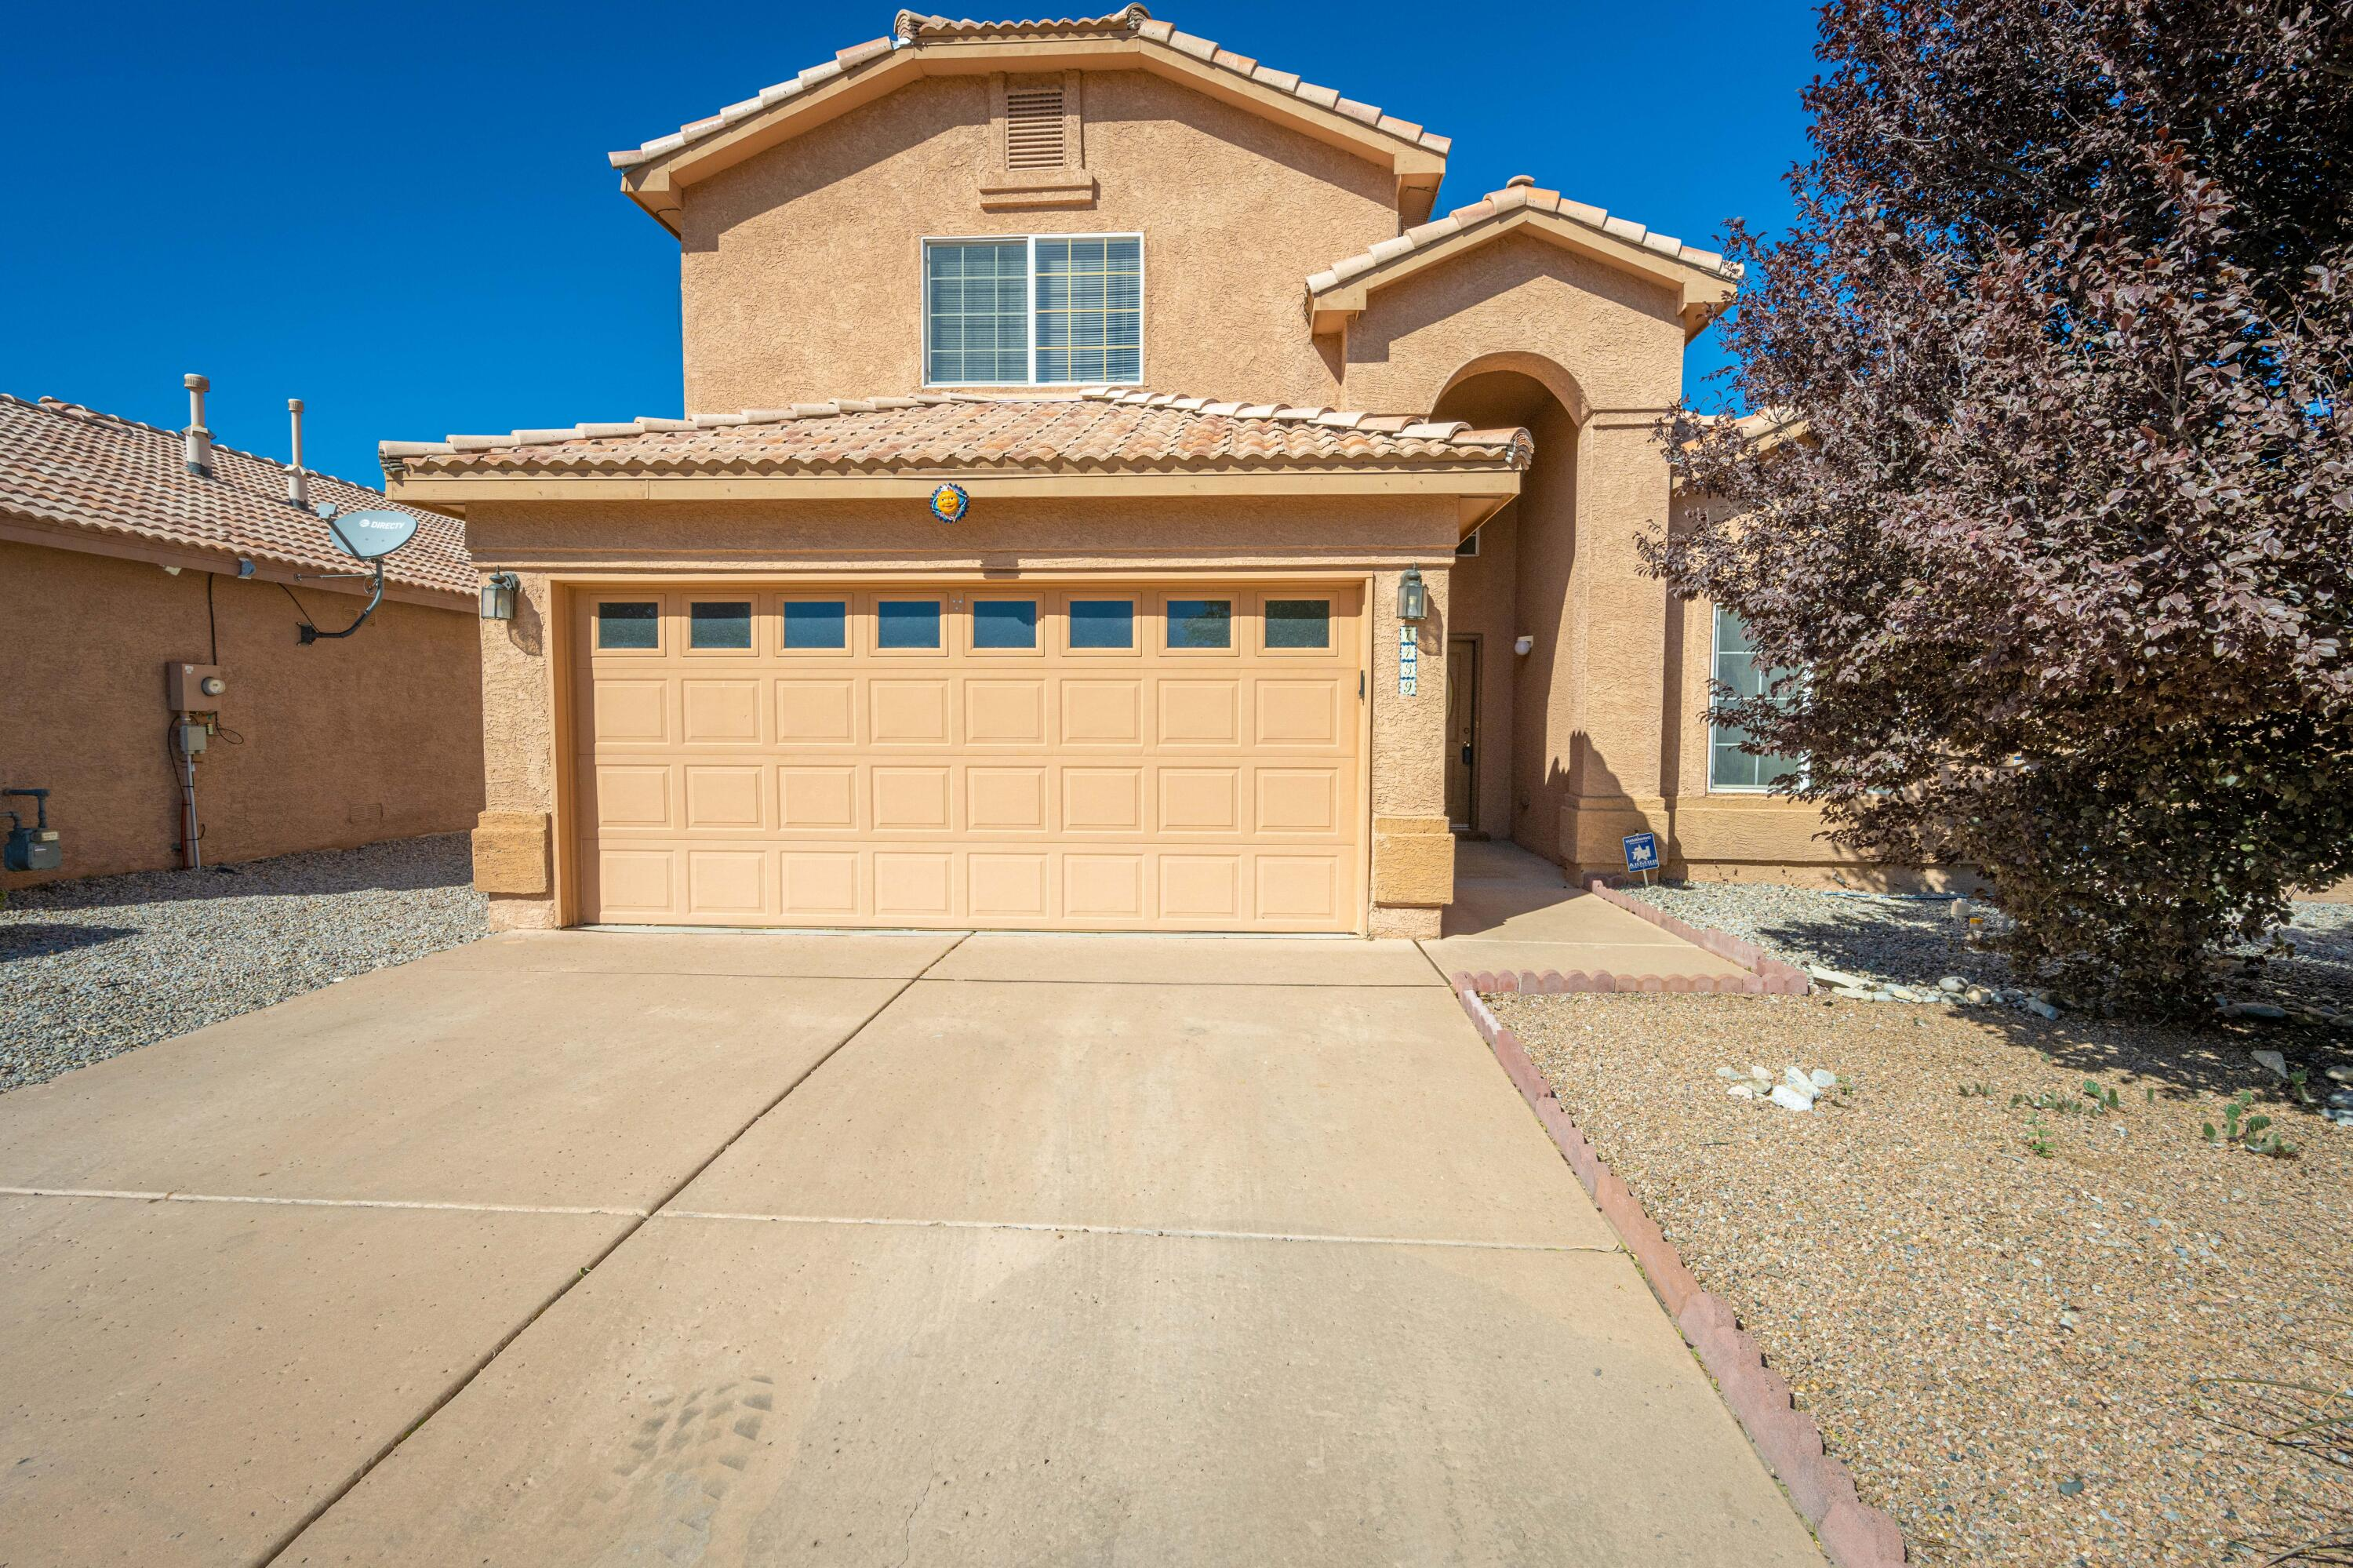 Beautiful home in the desirable Encanto Village, a private gated community in the SW part of Albuquerque is now for sale. The moment you walk-in, you notice the tall ceilings, spacious living room with fireplace, kitchen with an open feel to the living room that comes with a cute breakfast nook, lots of cabinet/countertop space and perfect while cooking and entertaining your guests for the holiday season. Master bedroom is located downstairs with a jetted garden tub, walk-in closet, 1/2 bathroom downstairs for guests, separate washer and dryer room along with ample storage space under stairway. Take a look upstairs where you can enjoy the large 2nd living space with open view to downstairs, all additional bedrooms upstairs with full bathroom to share. Home comes with